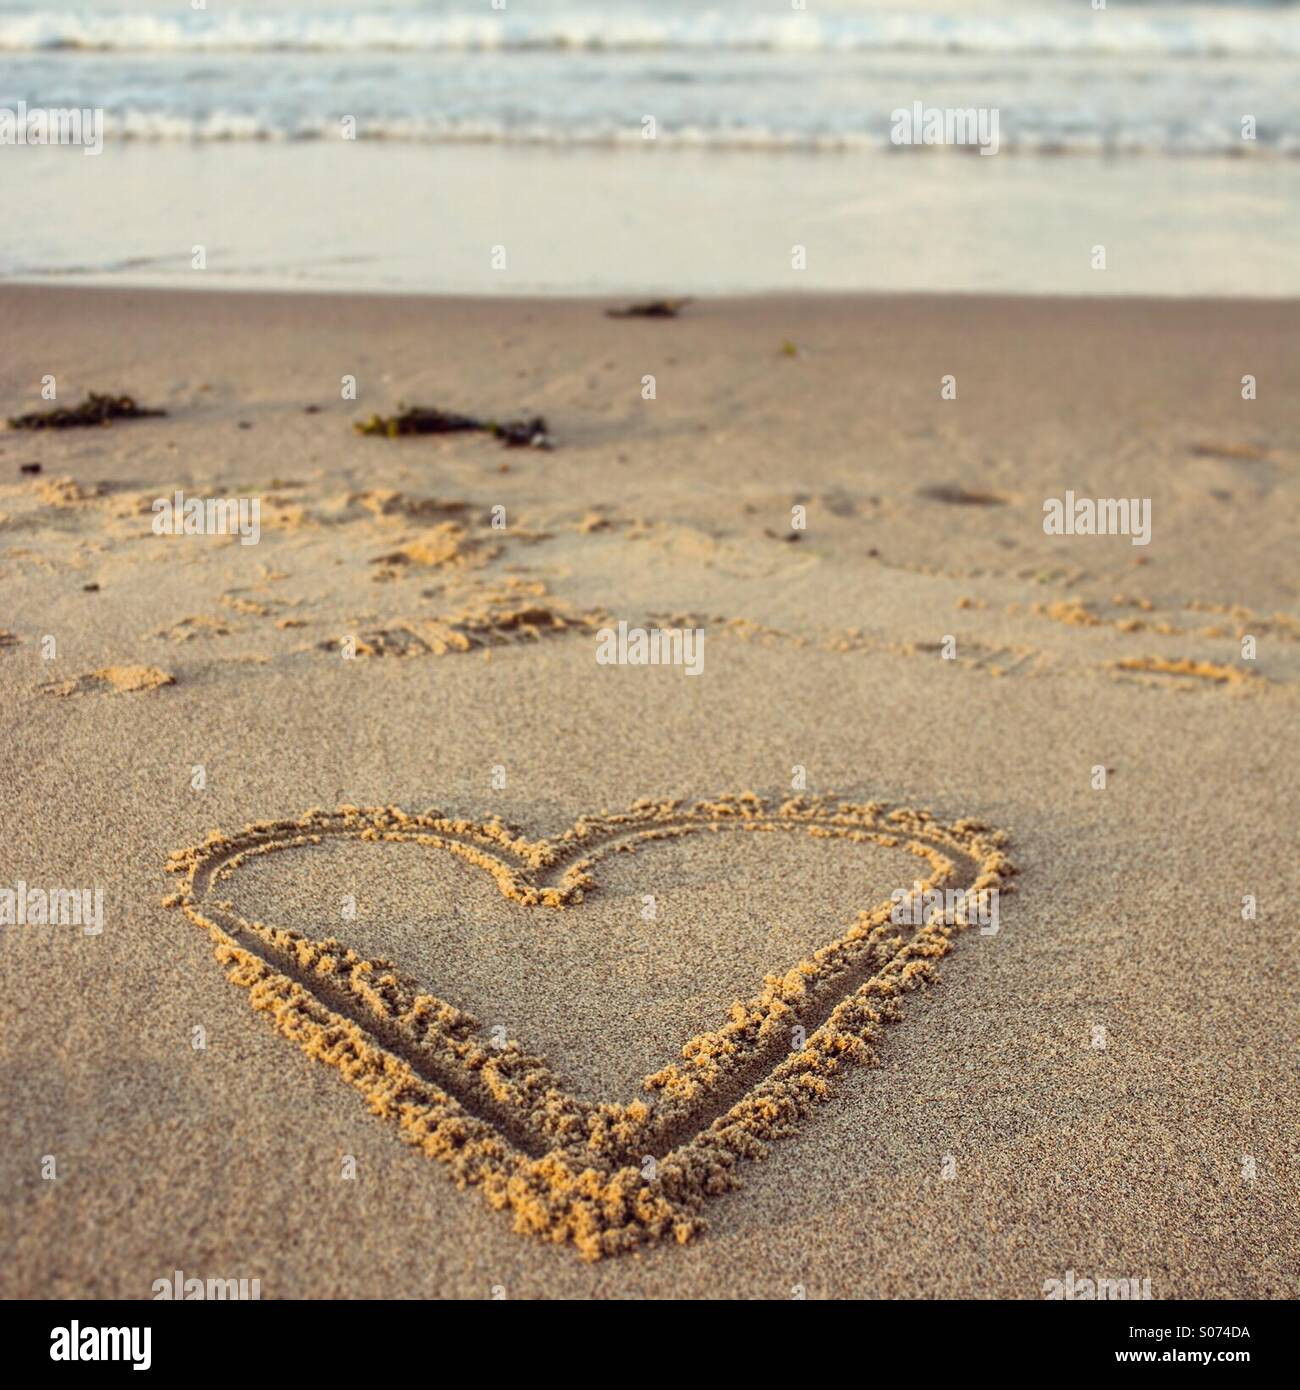 Heart shape drawn in sand on the beach - Stock Image